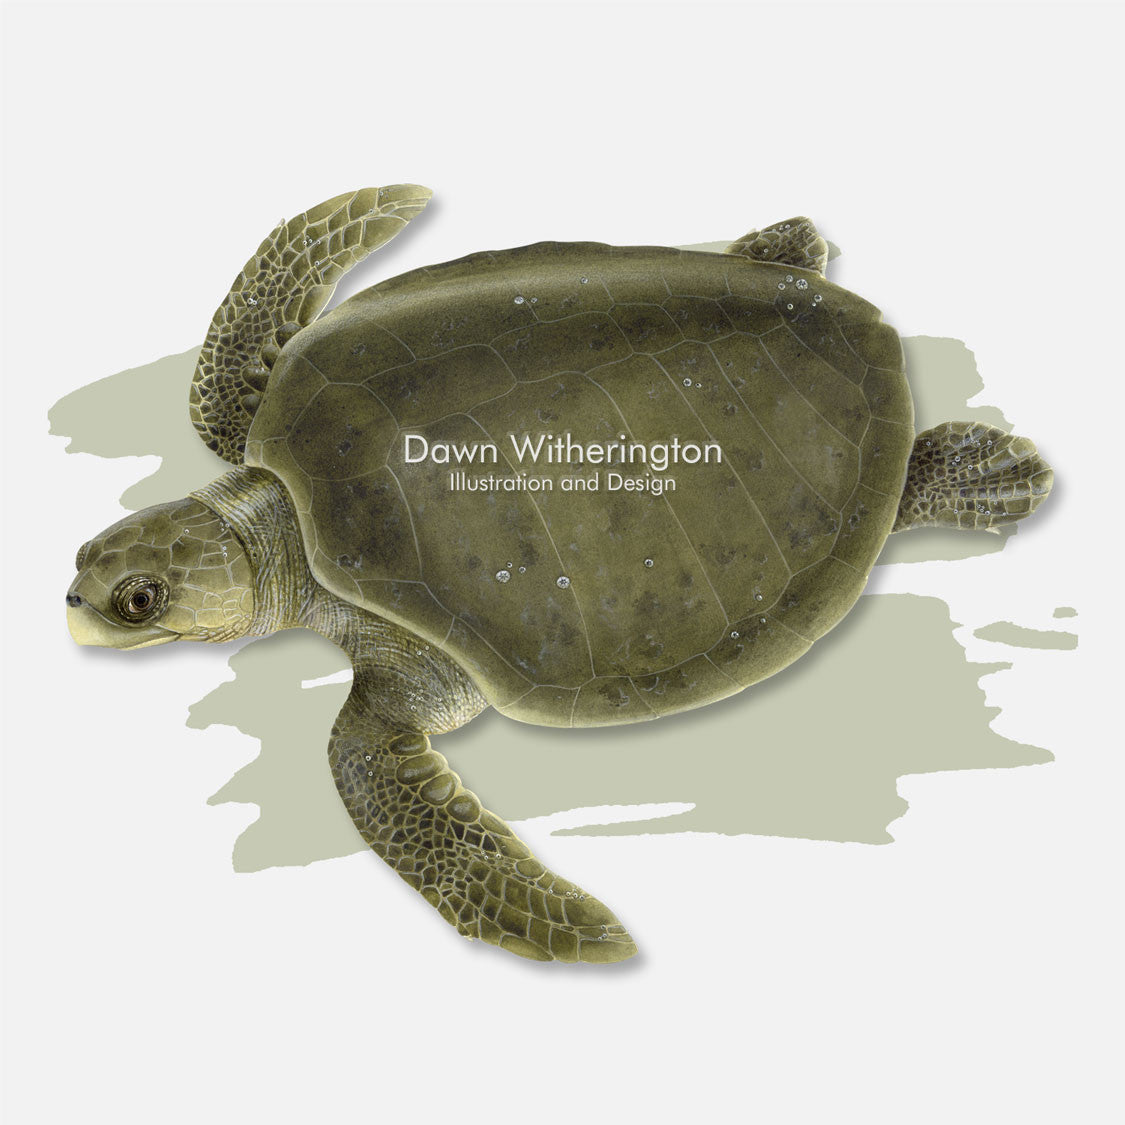 This beautiful illustration is of an olive ridley sea turtle, Lepidochelys olivacea, over a swash graphic.